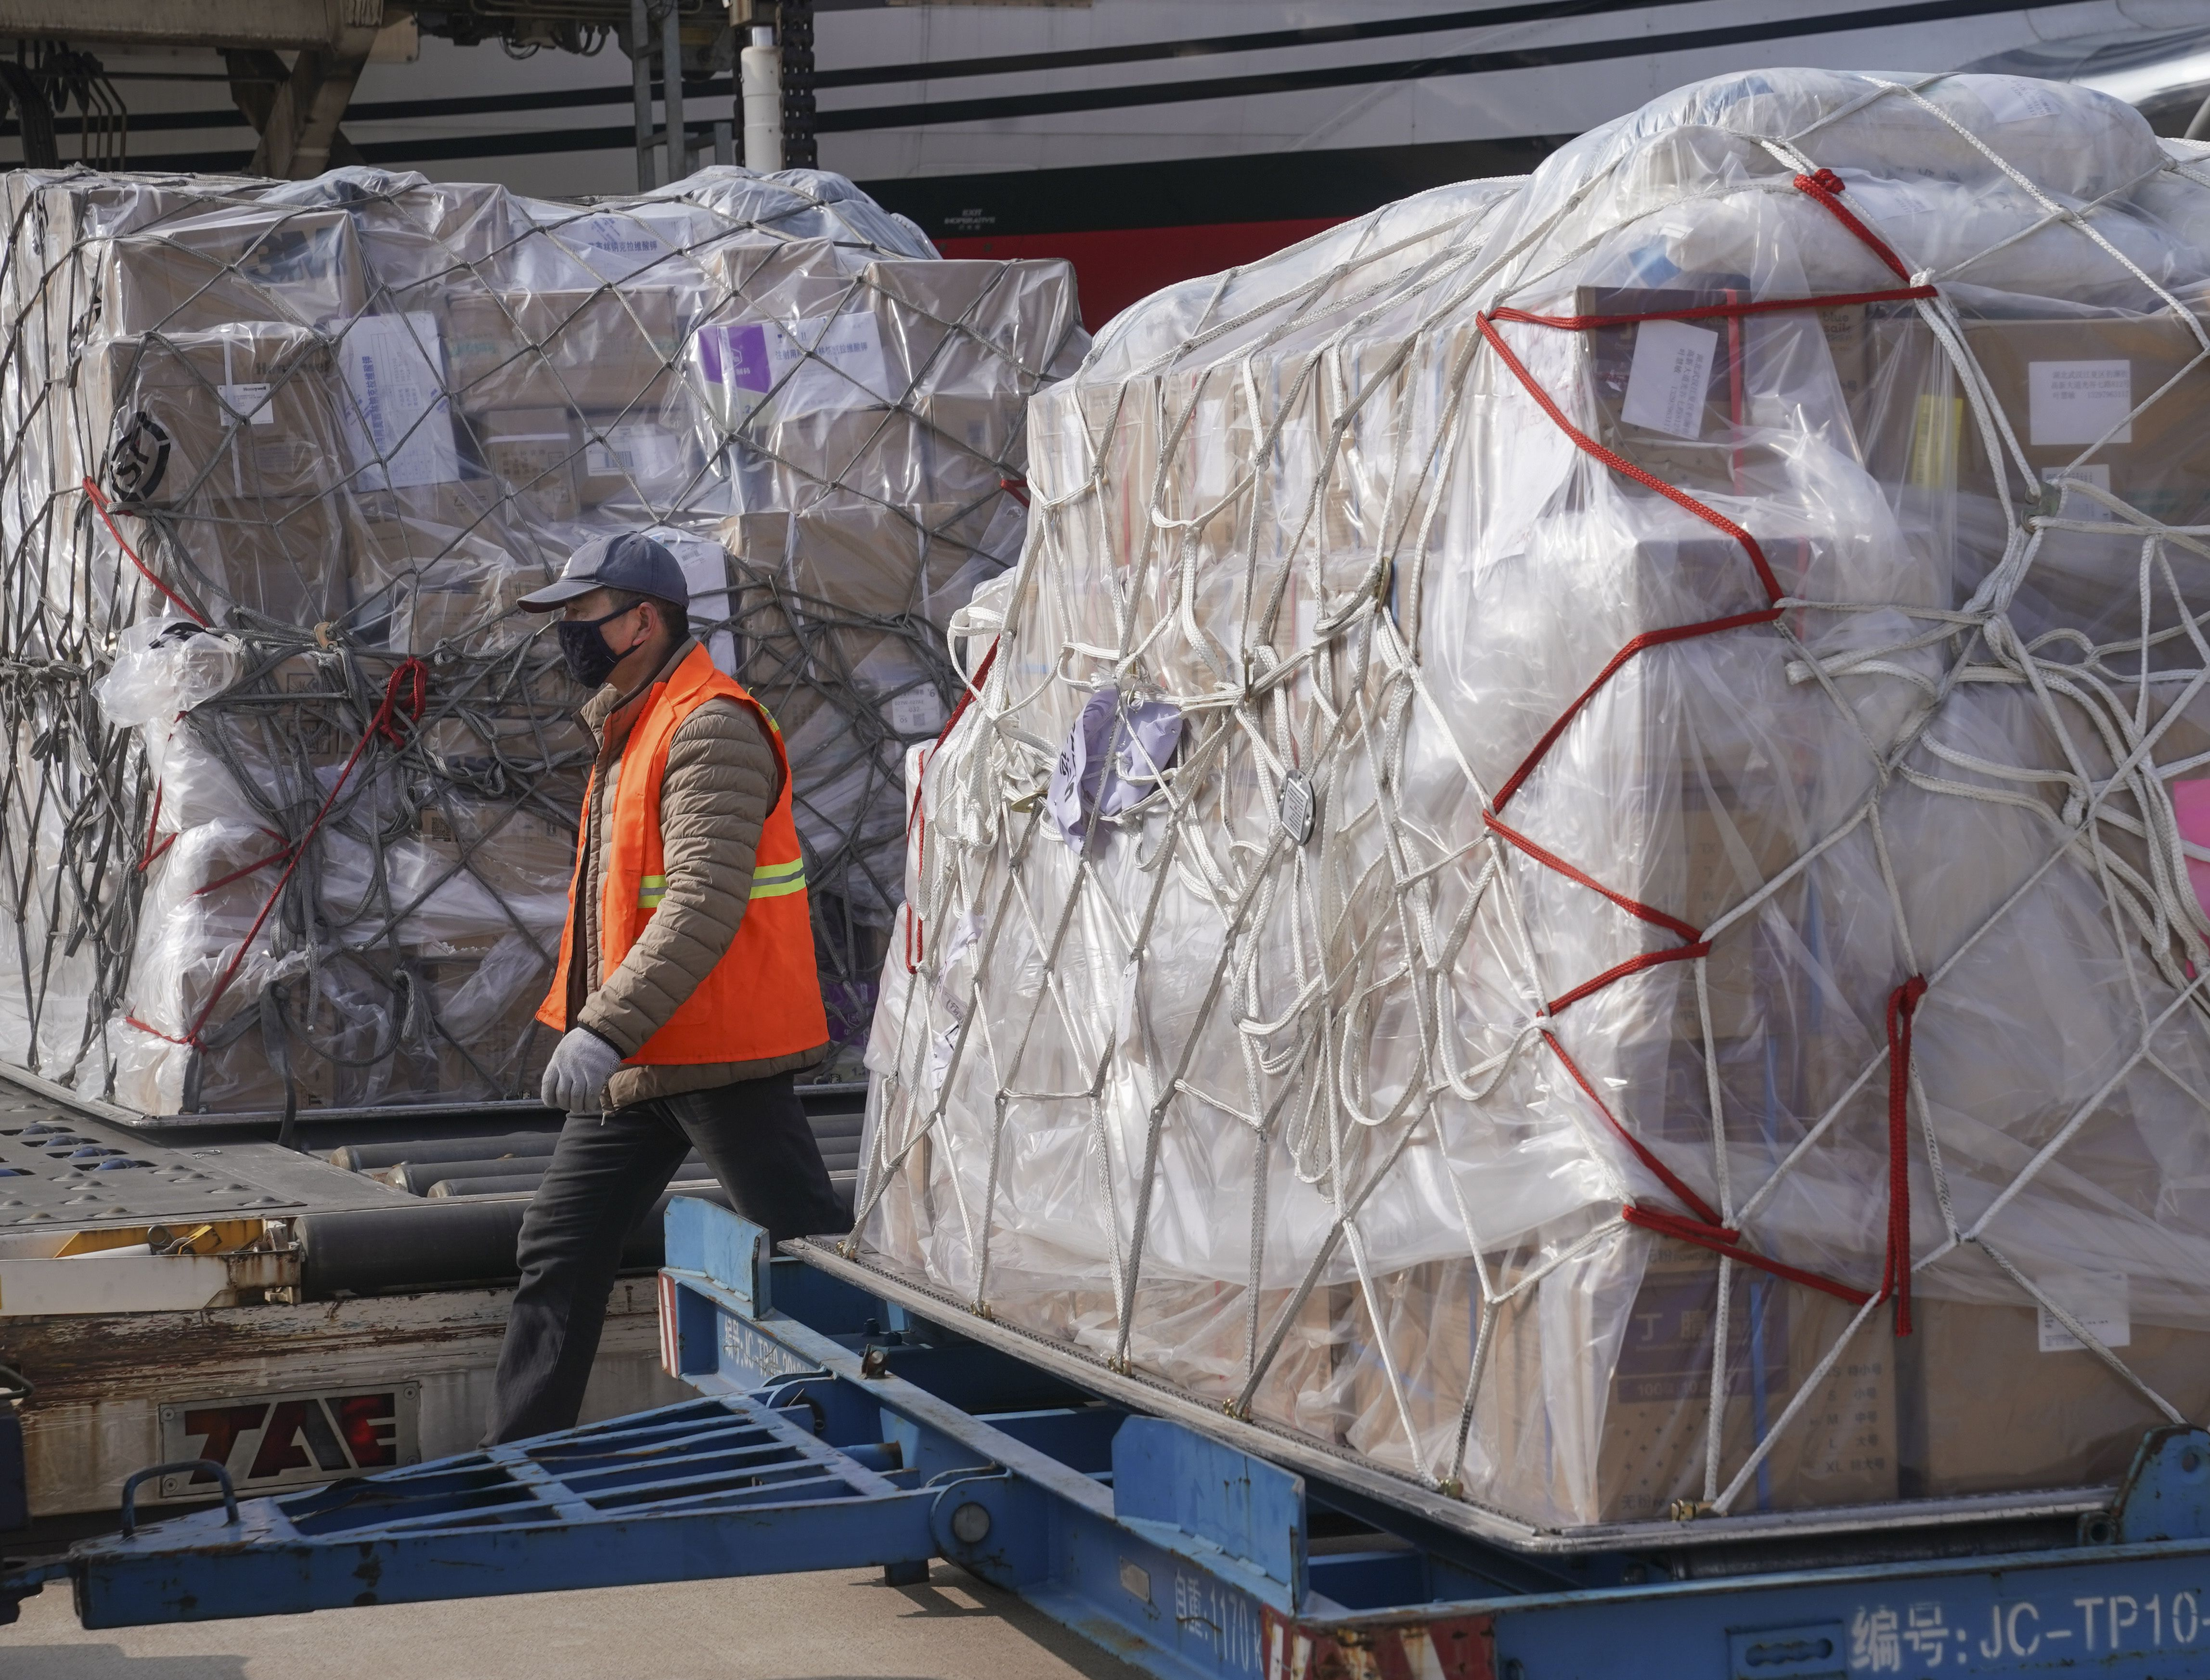 A new report from DHL's Resilience360 on the impact of Coronavirus on China and global supply chains finds cargo shipments facing delays.